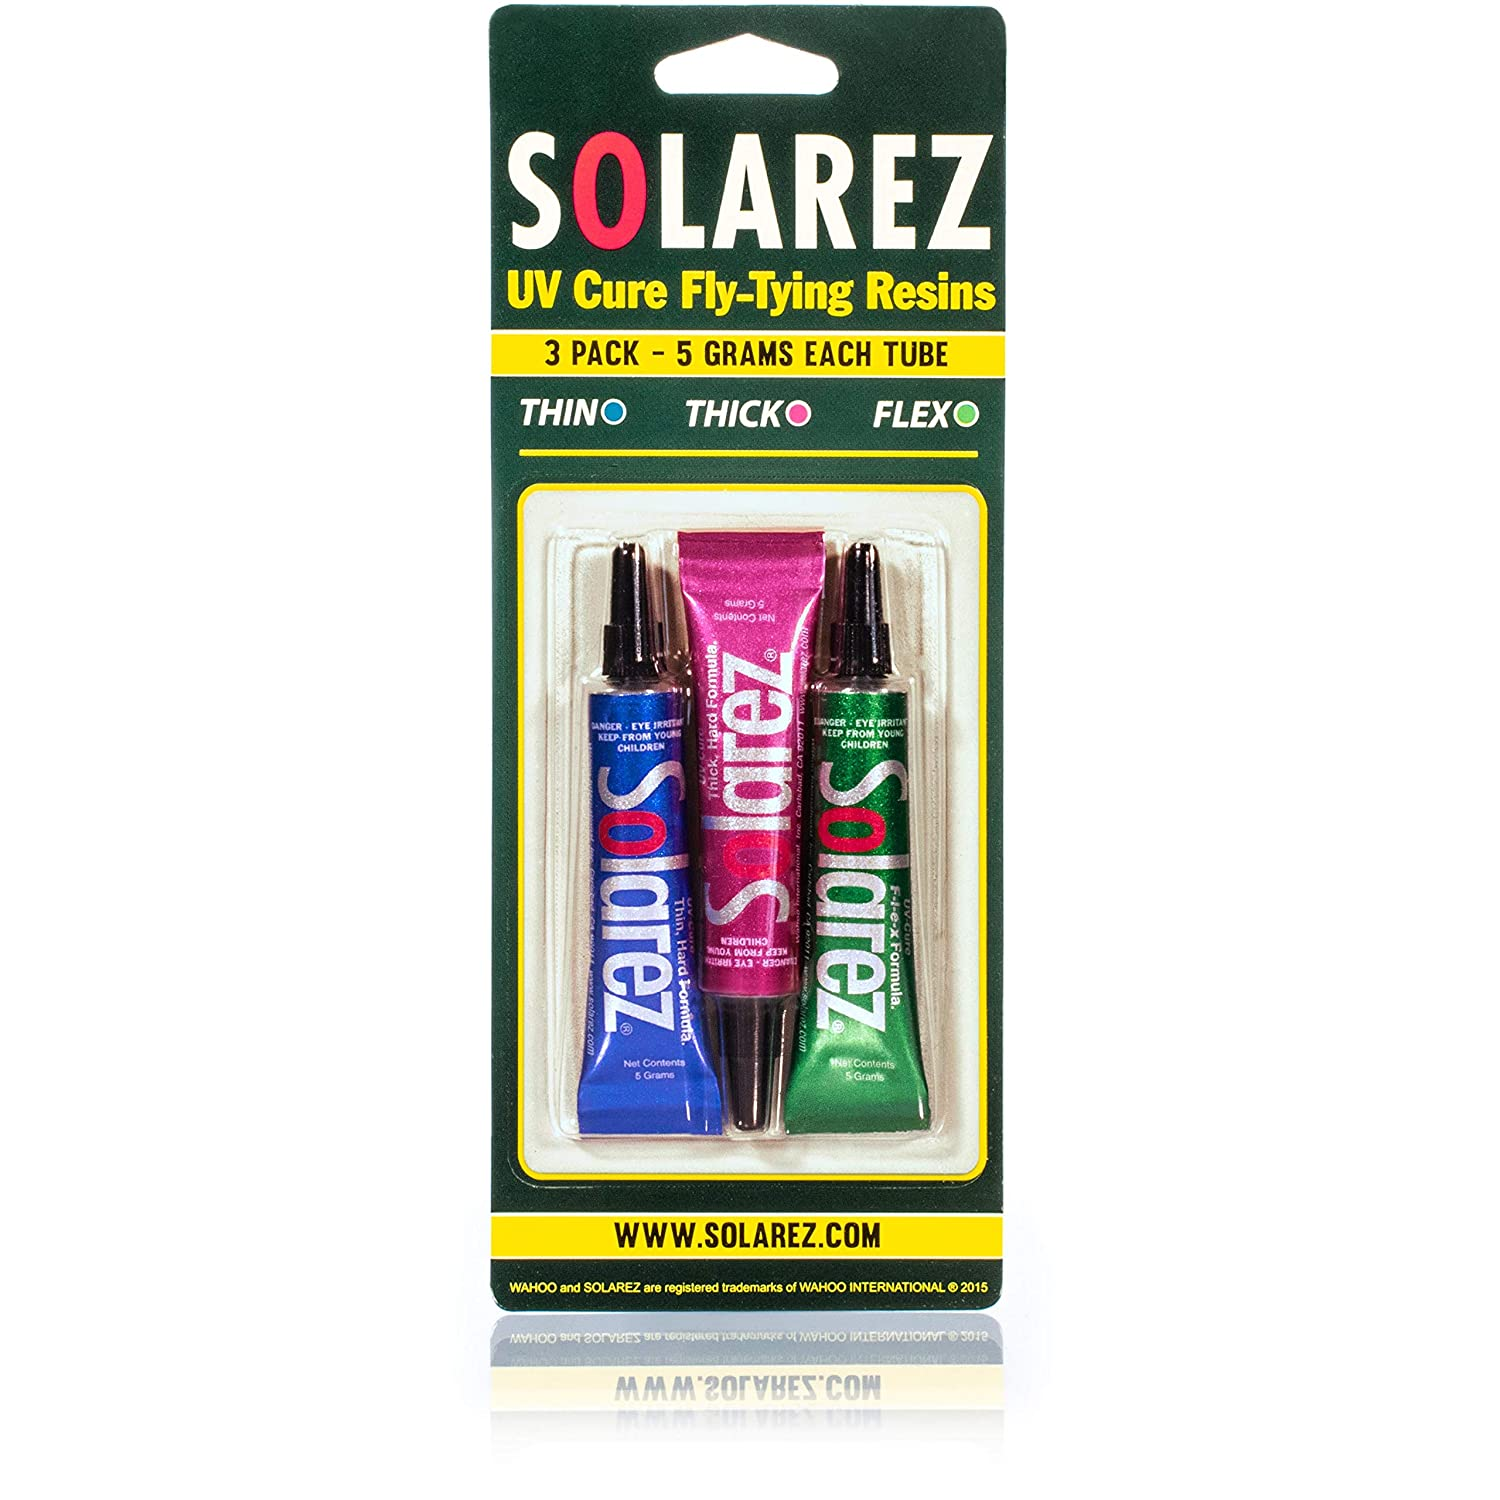 SOLAREZ Fly Tie UV Cure Resin - 3 Pack Starter Kit - Thin Hard, Thick Hard,  Flex Formulas (Three 5 Gram Tubes) Fly Tying Resin, FlyTye Glue, Fly